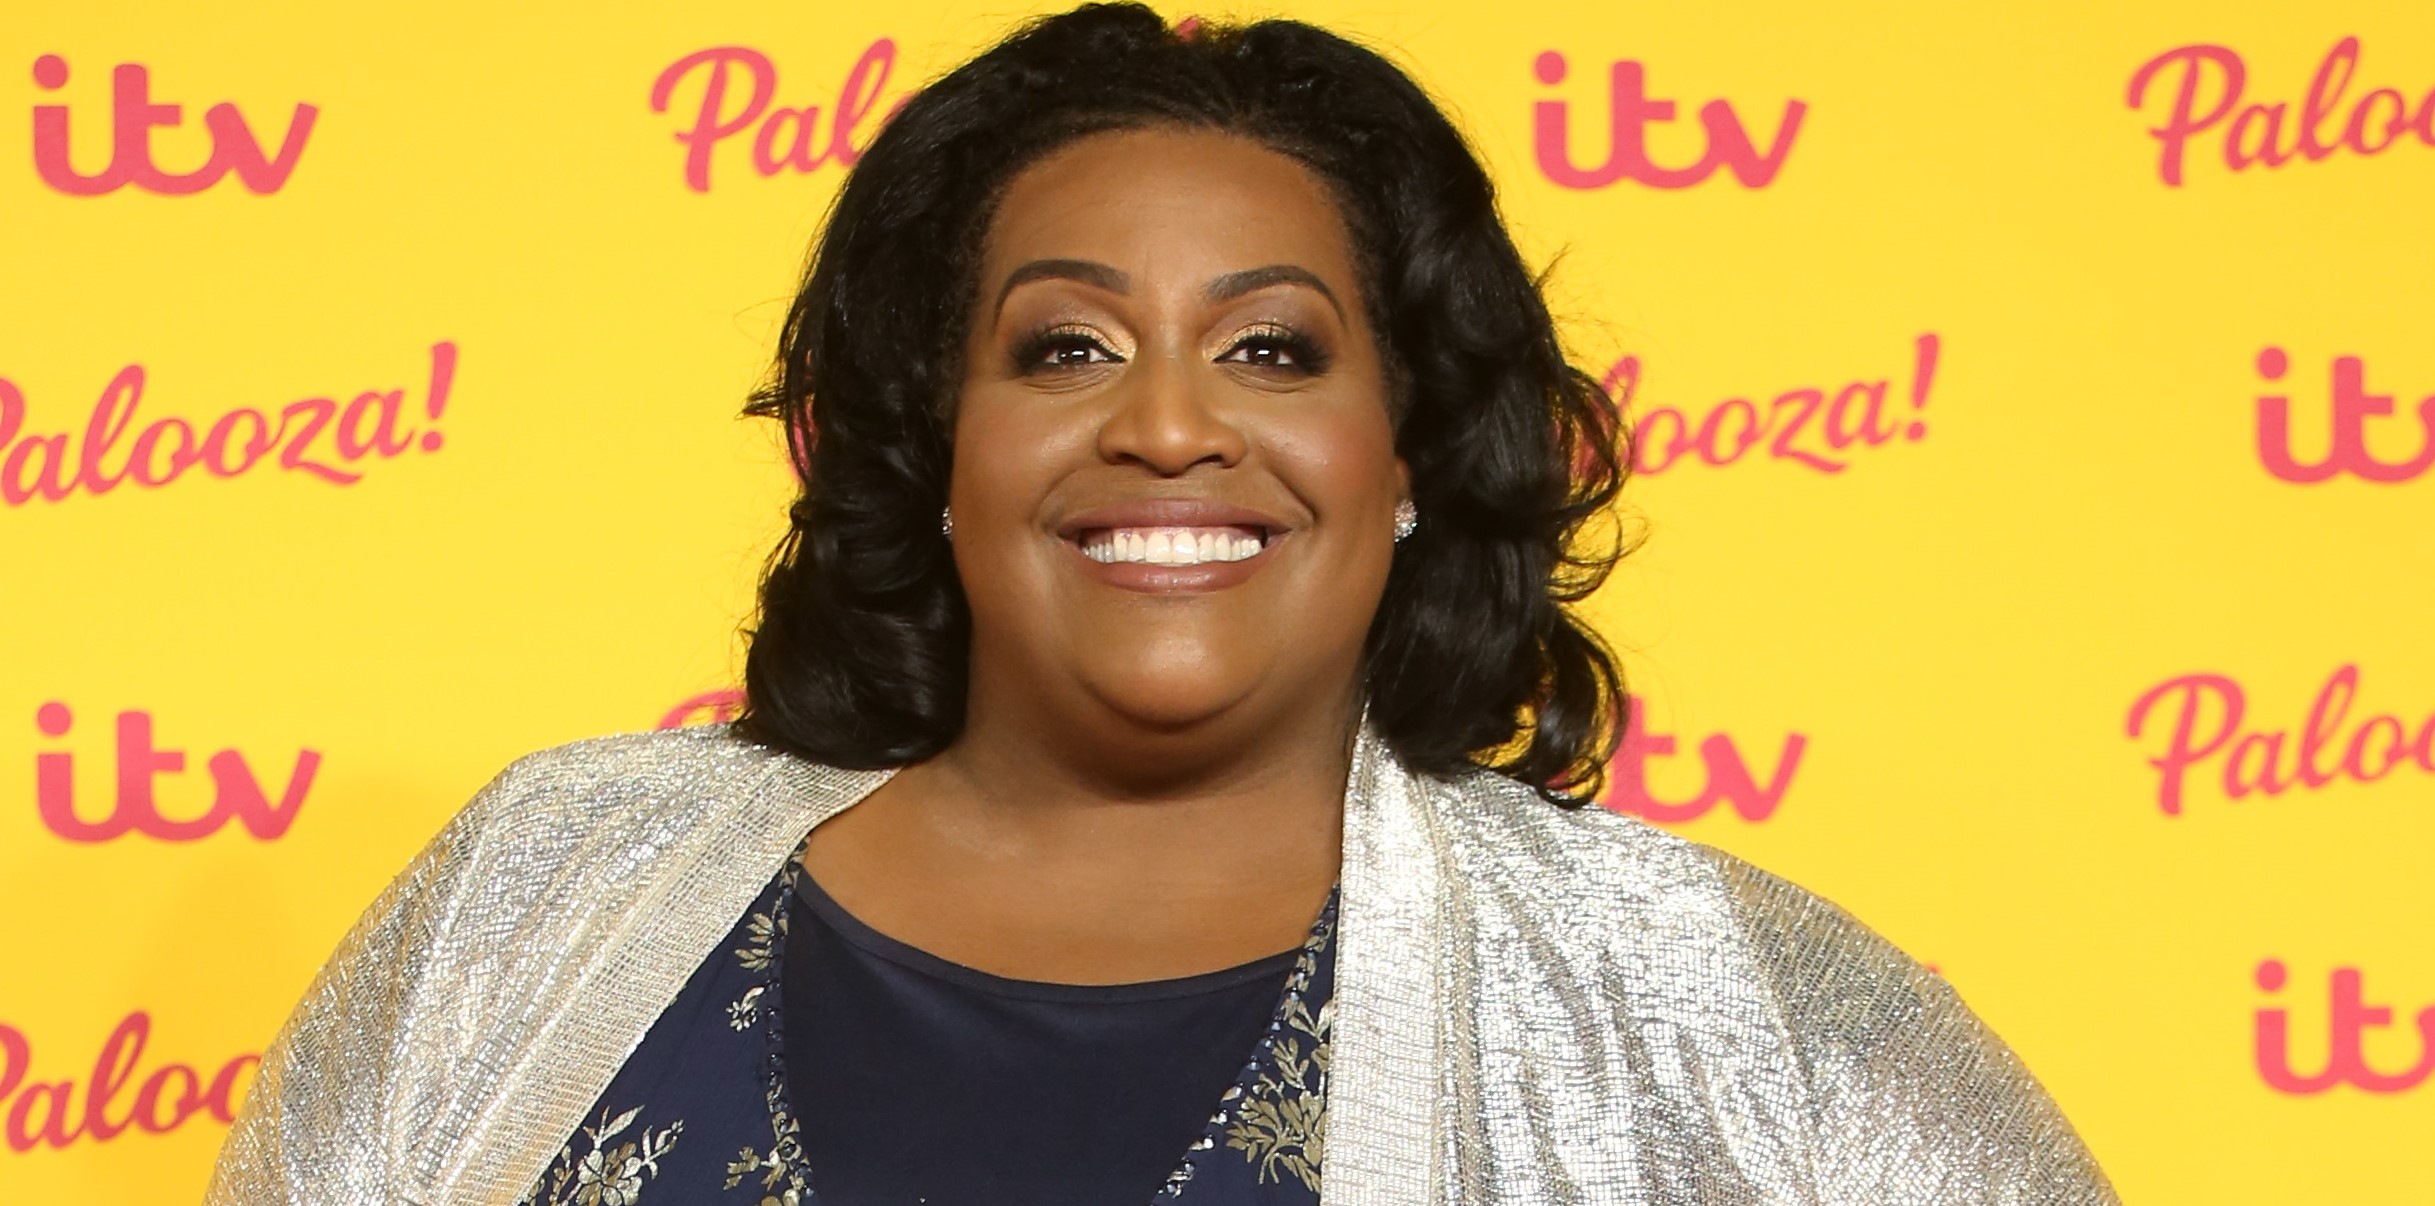 Alison Hammond confirms she will be going on Celebs Go Dating